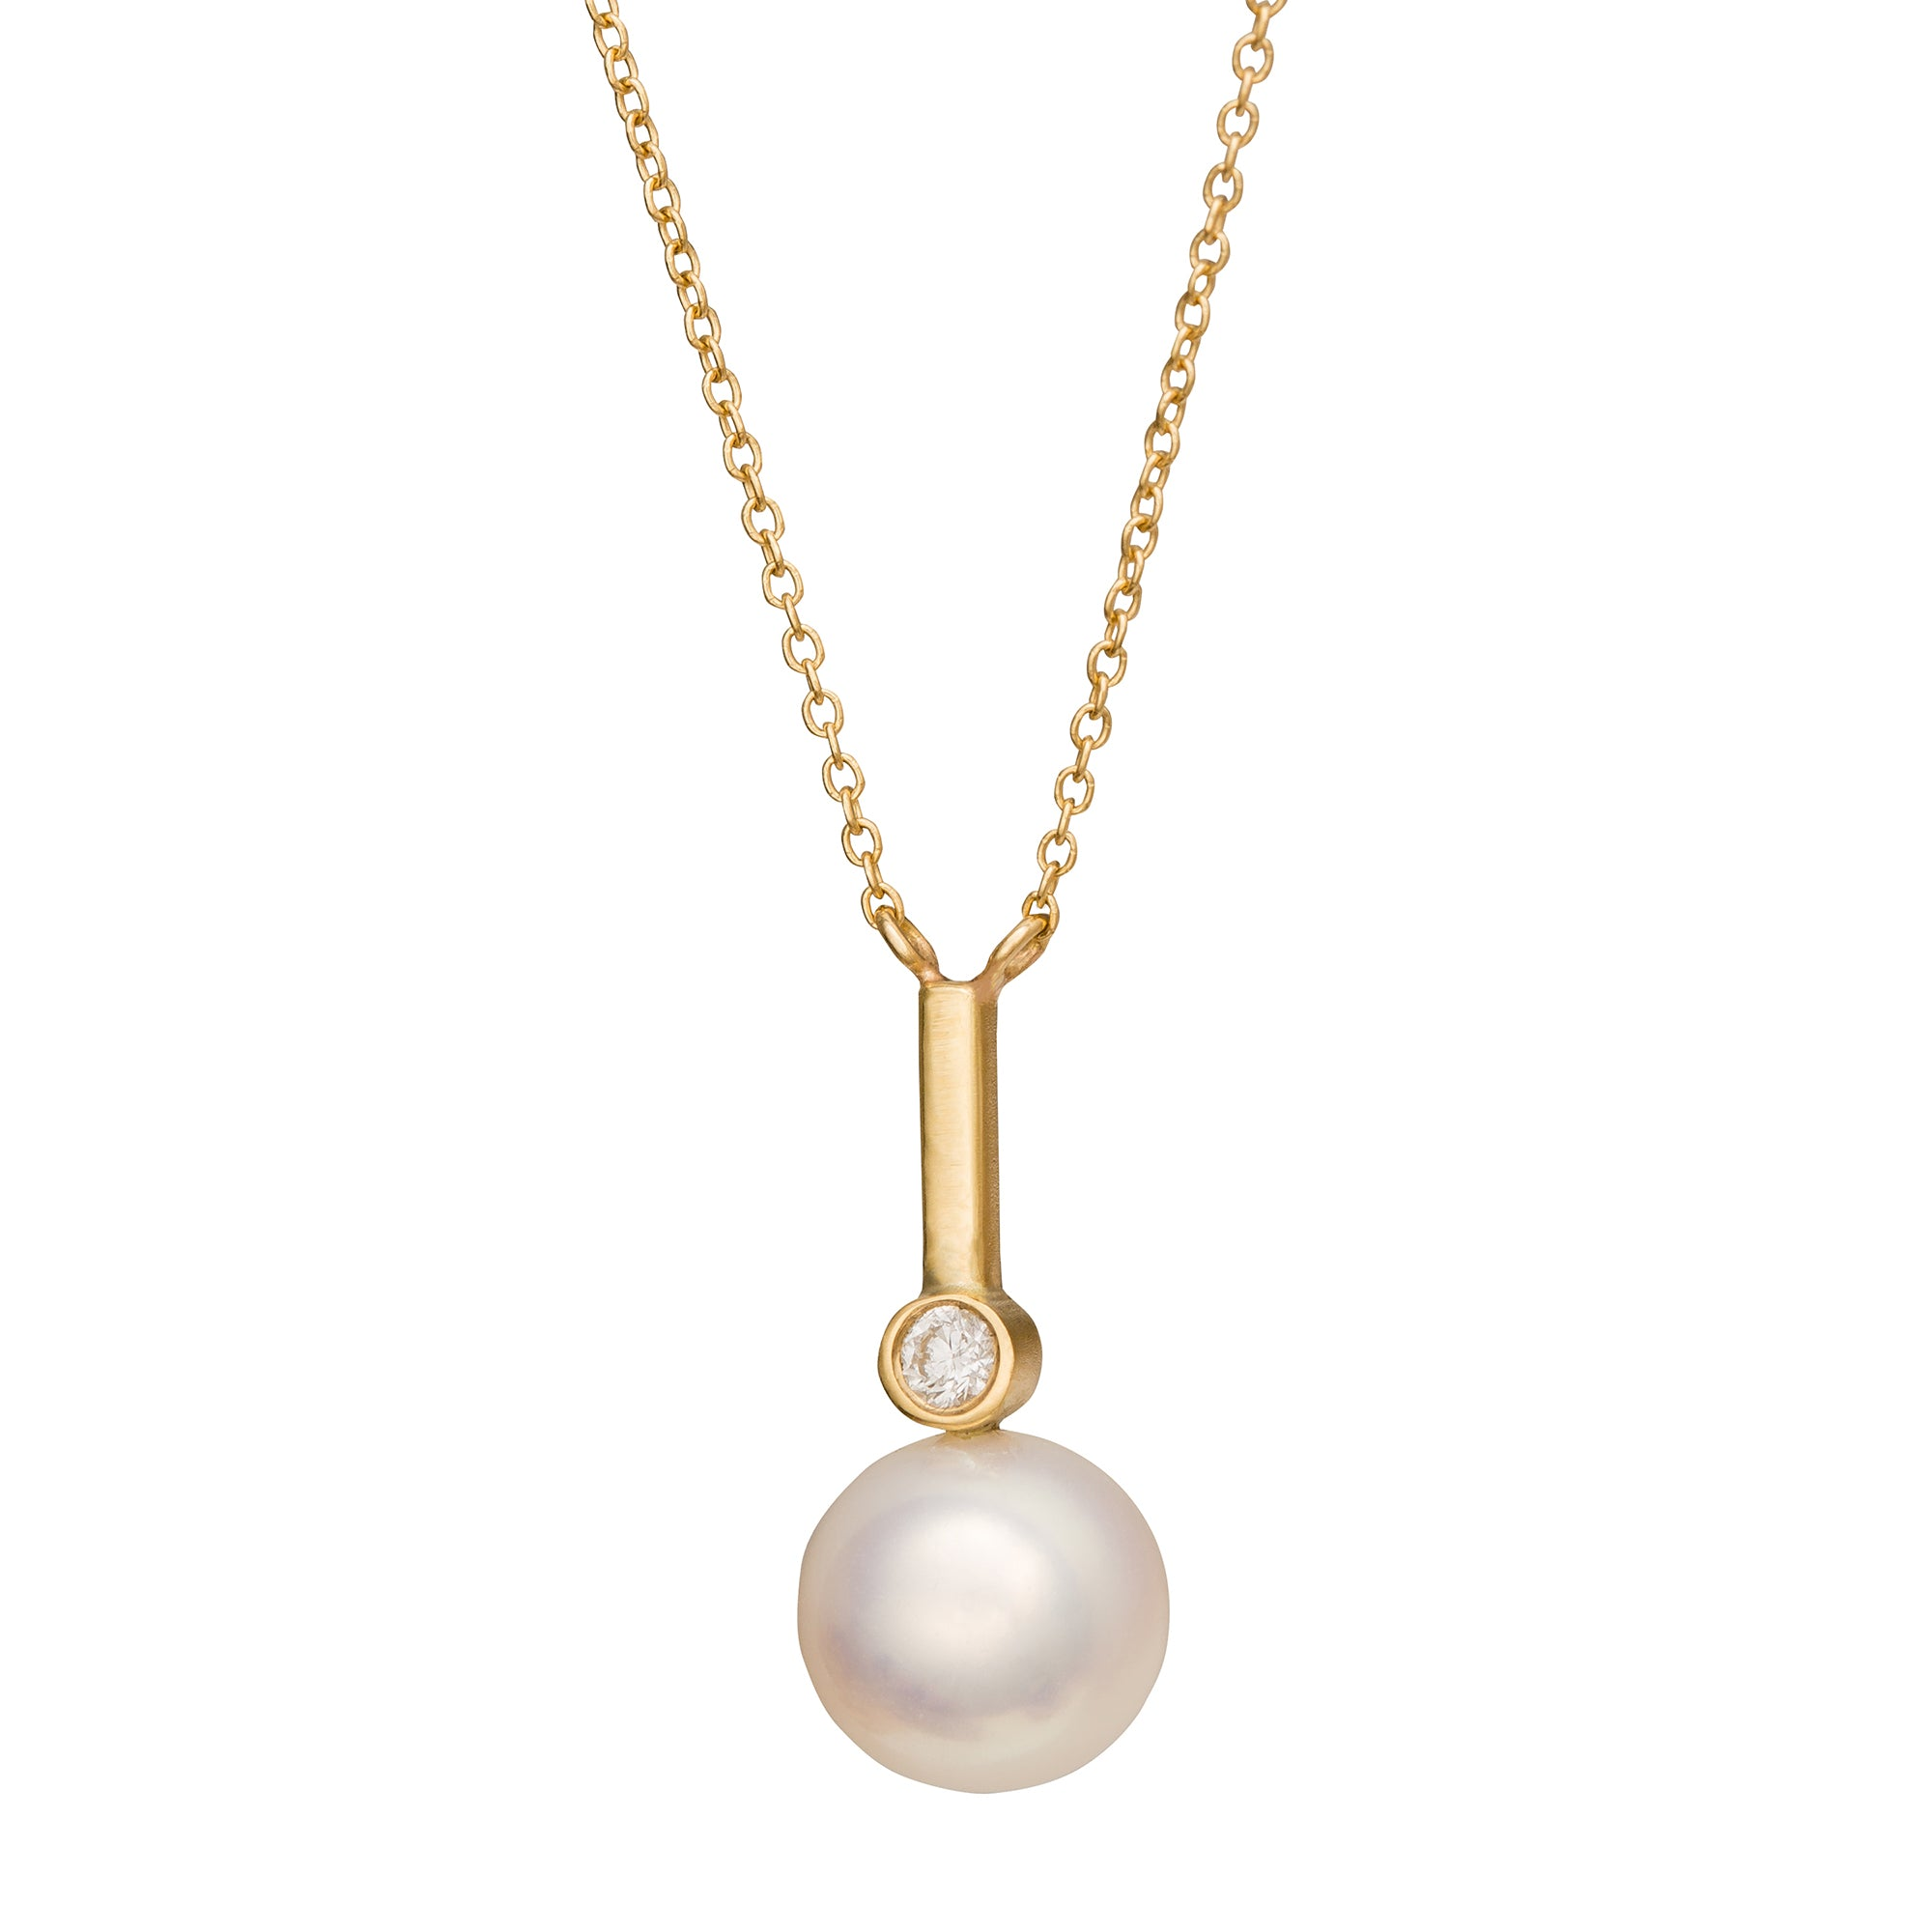 Pearl & Diamond Necklace - Katey Walker - Necklaces | Broken English Jewelry